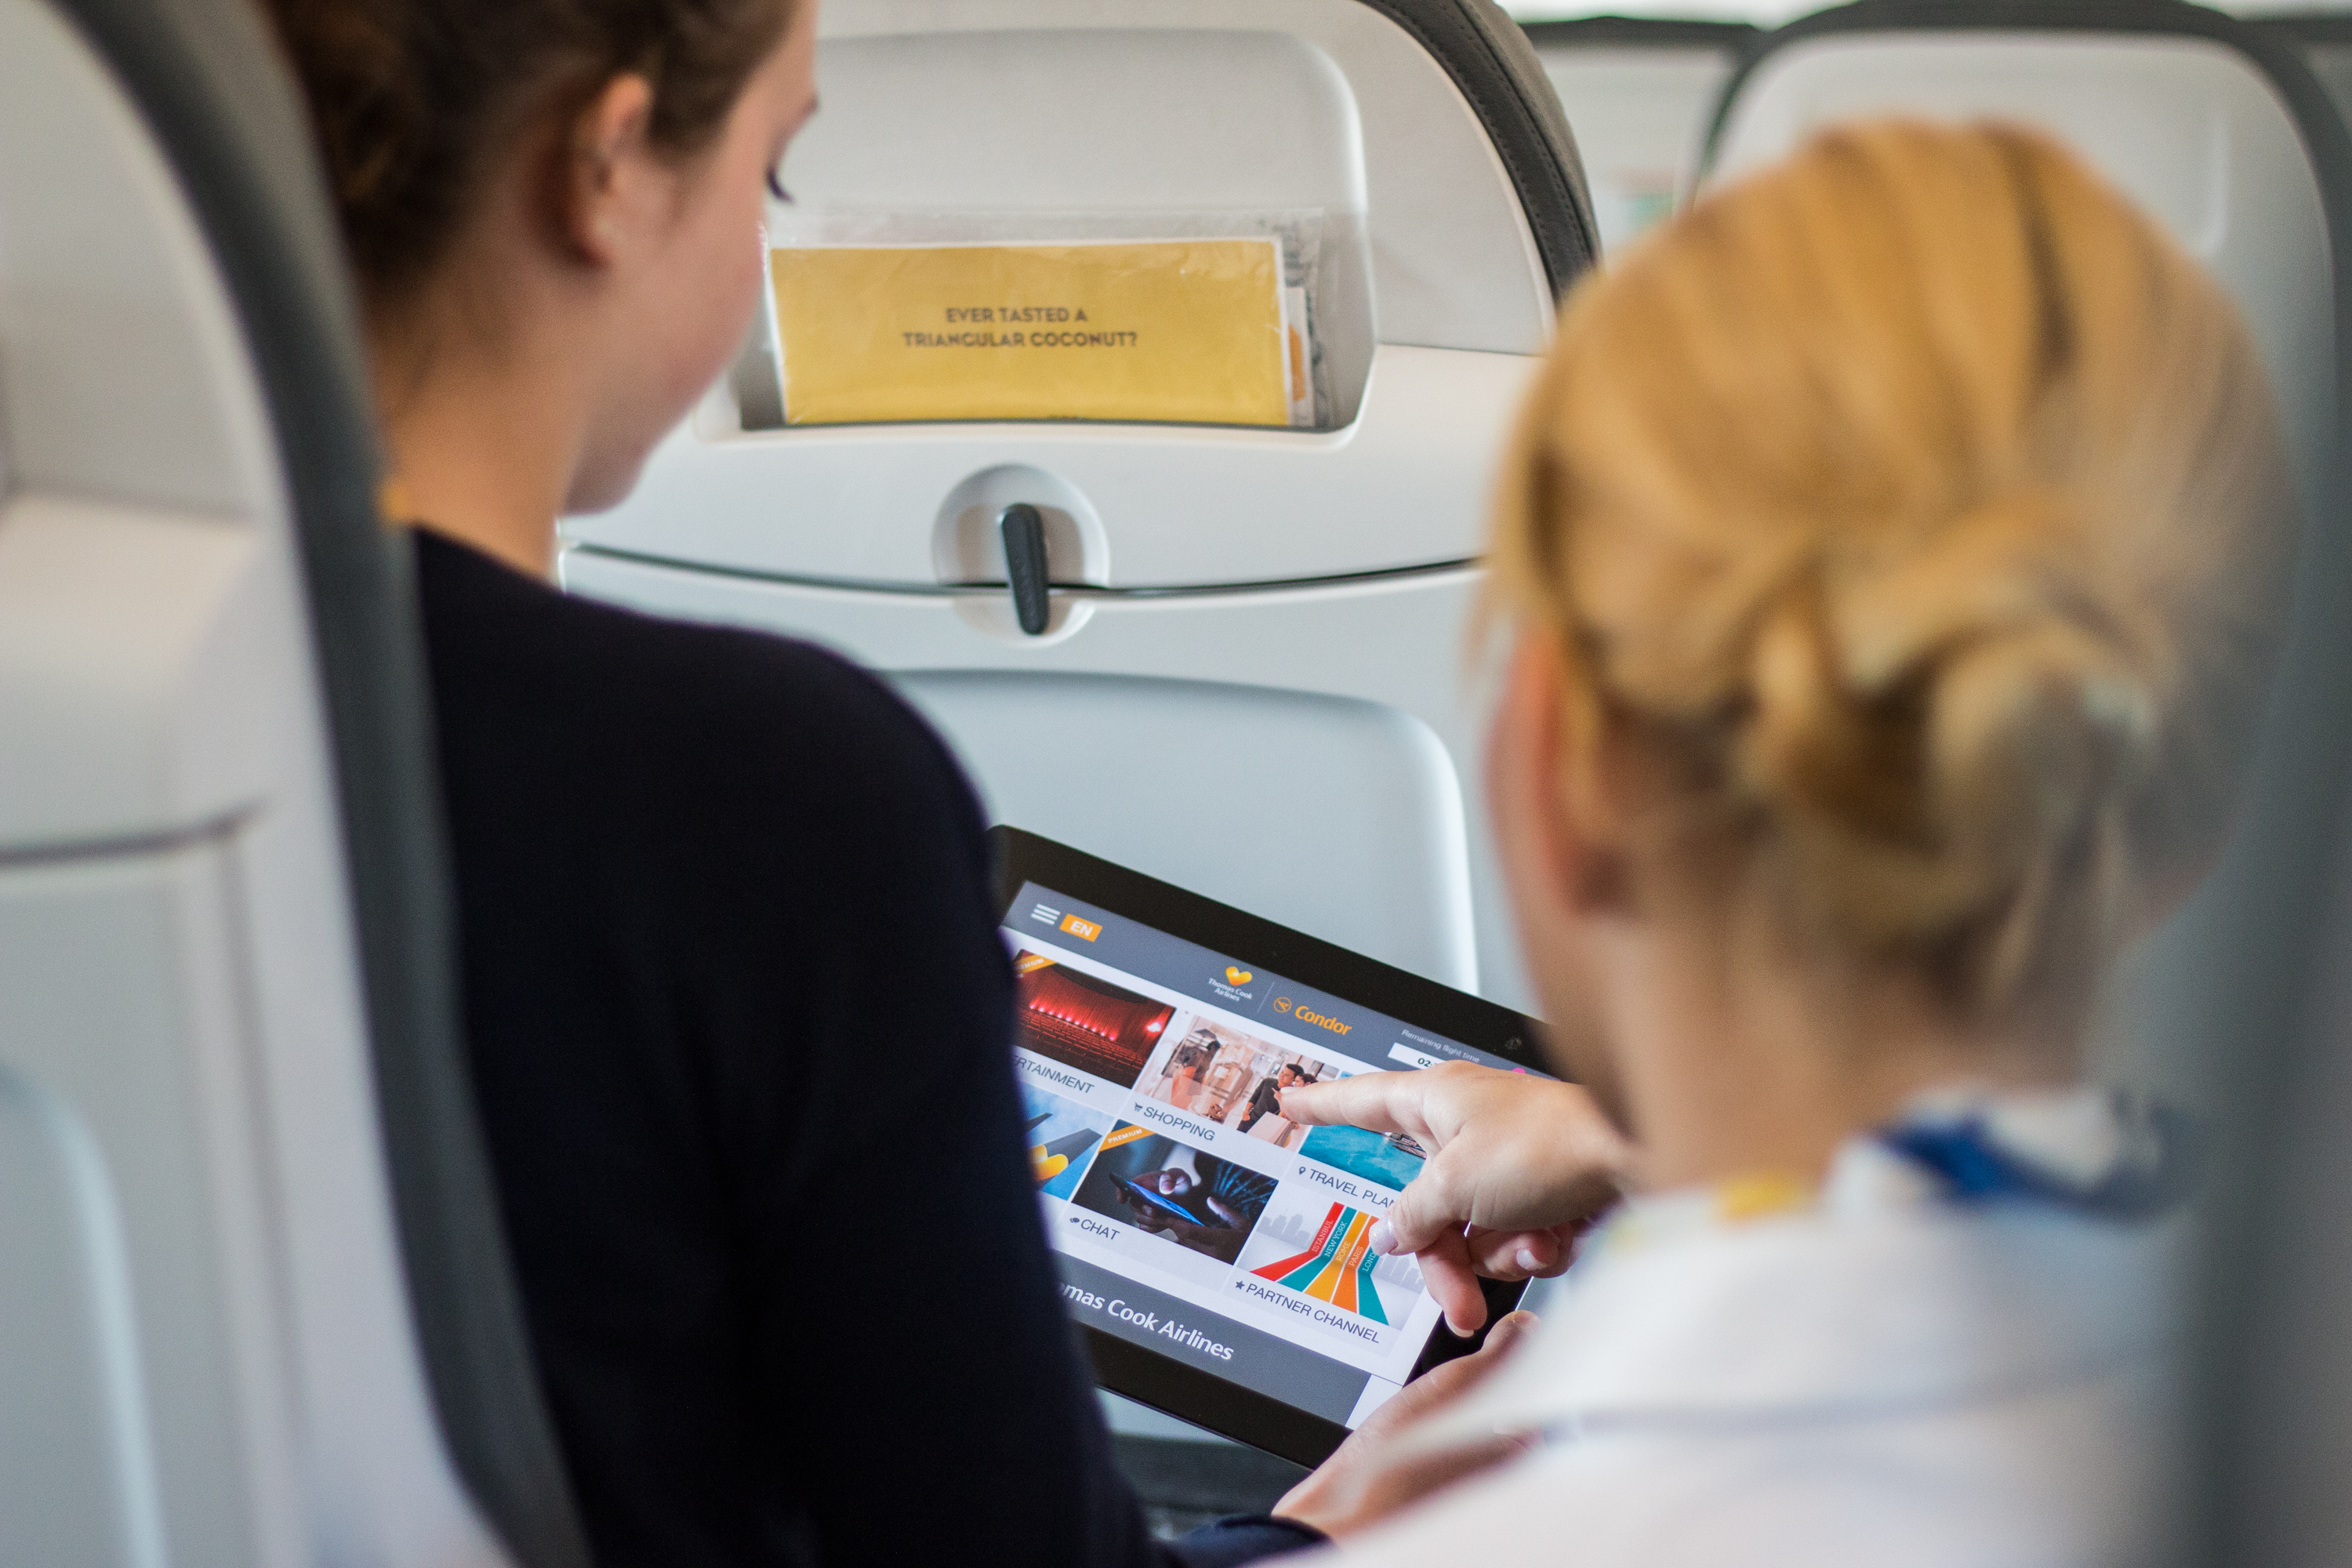 SunStream på Thomas Cook-fly (Foto: Thomas Cook Airlines)